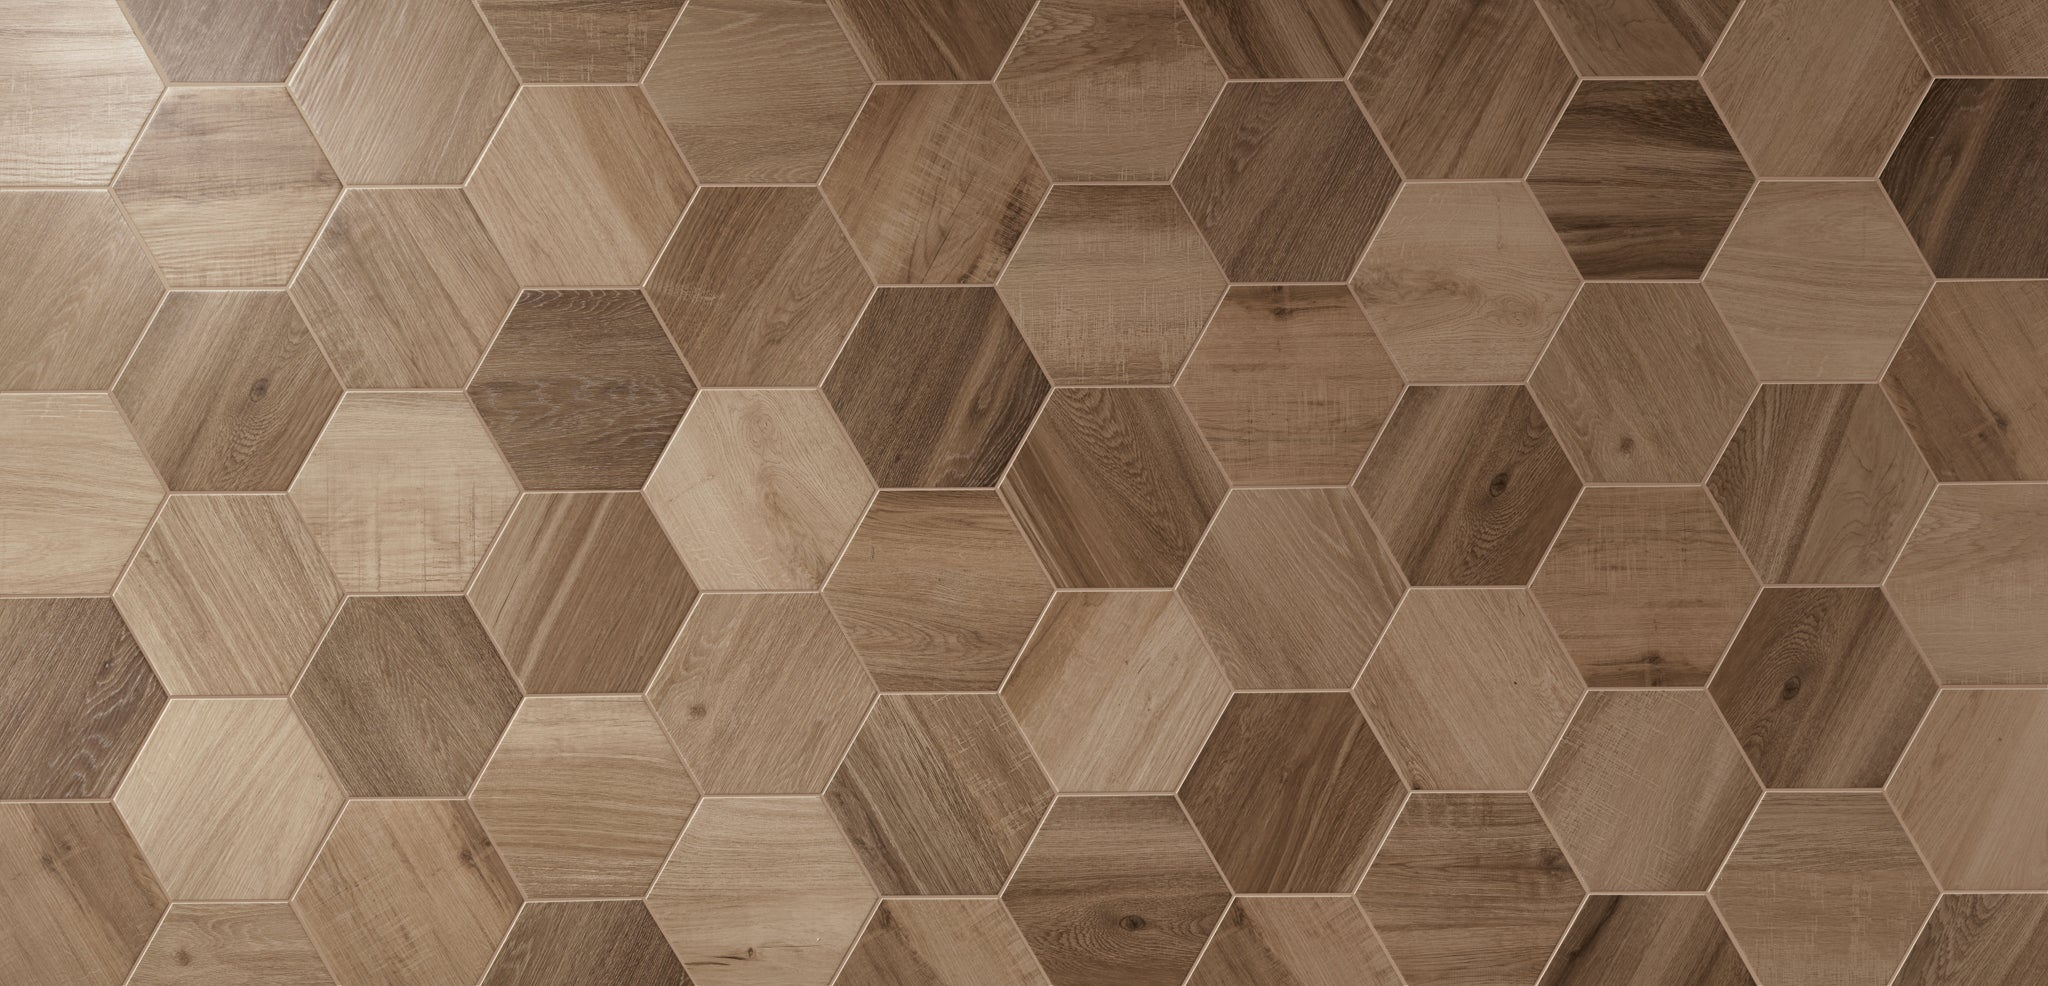 Baked Tiles Hexagon Wood Range Geometric Wood Tiles